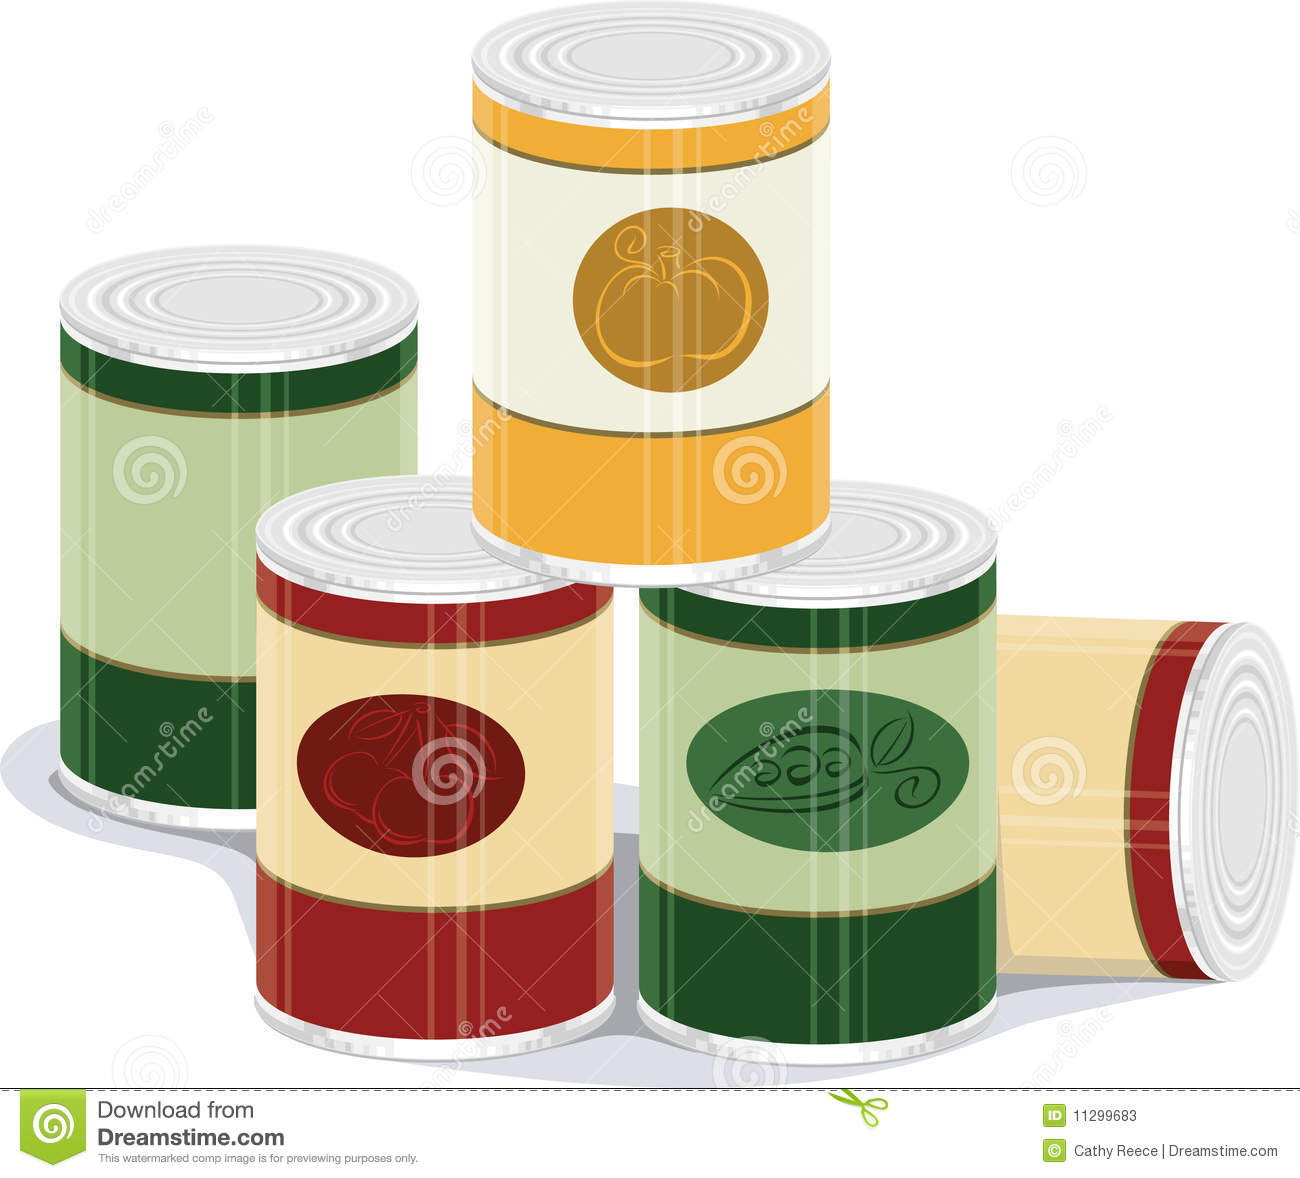 canned goods stock photos image 11299683 Law and Justice Clip Art Scales of Justice Symbol